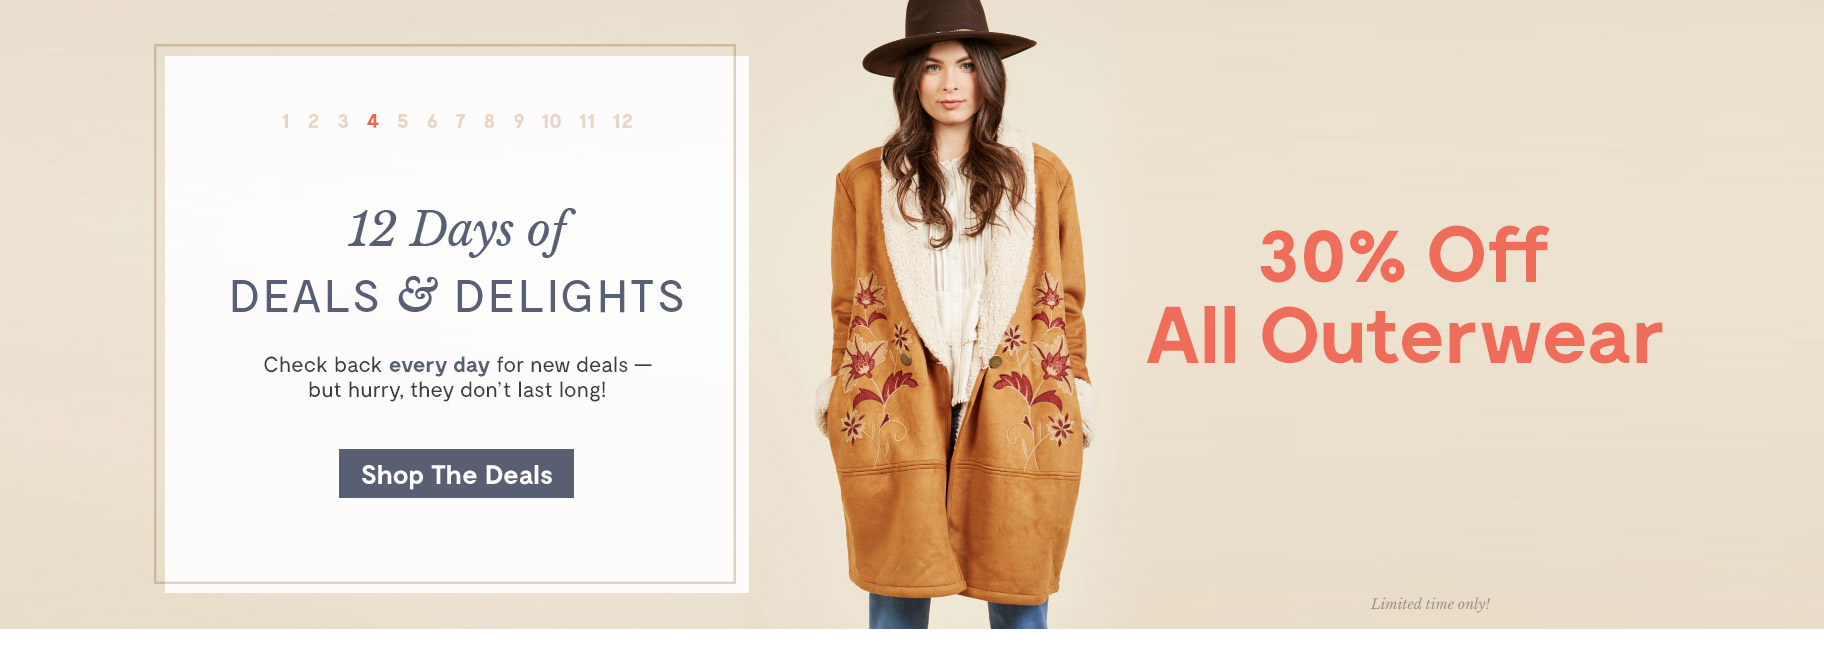 12 Days of Deals & Delights. Day 4 30% Off All Outerwear. Shop the Deals.